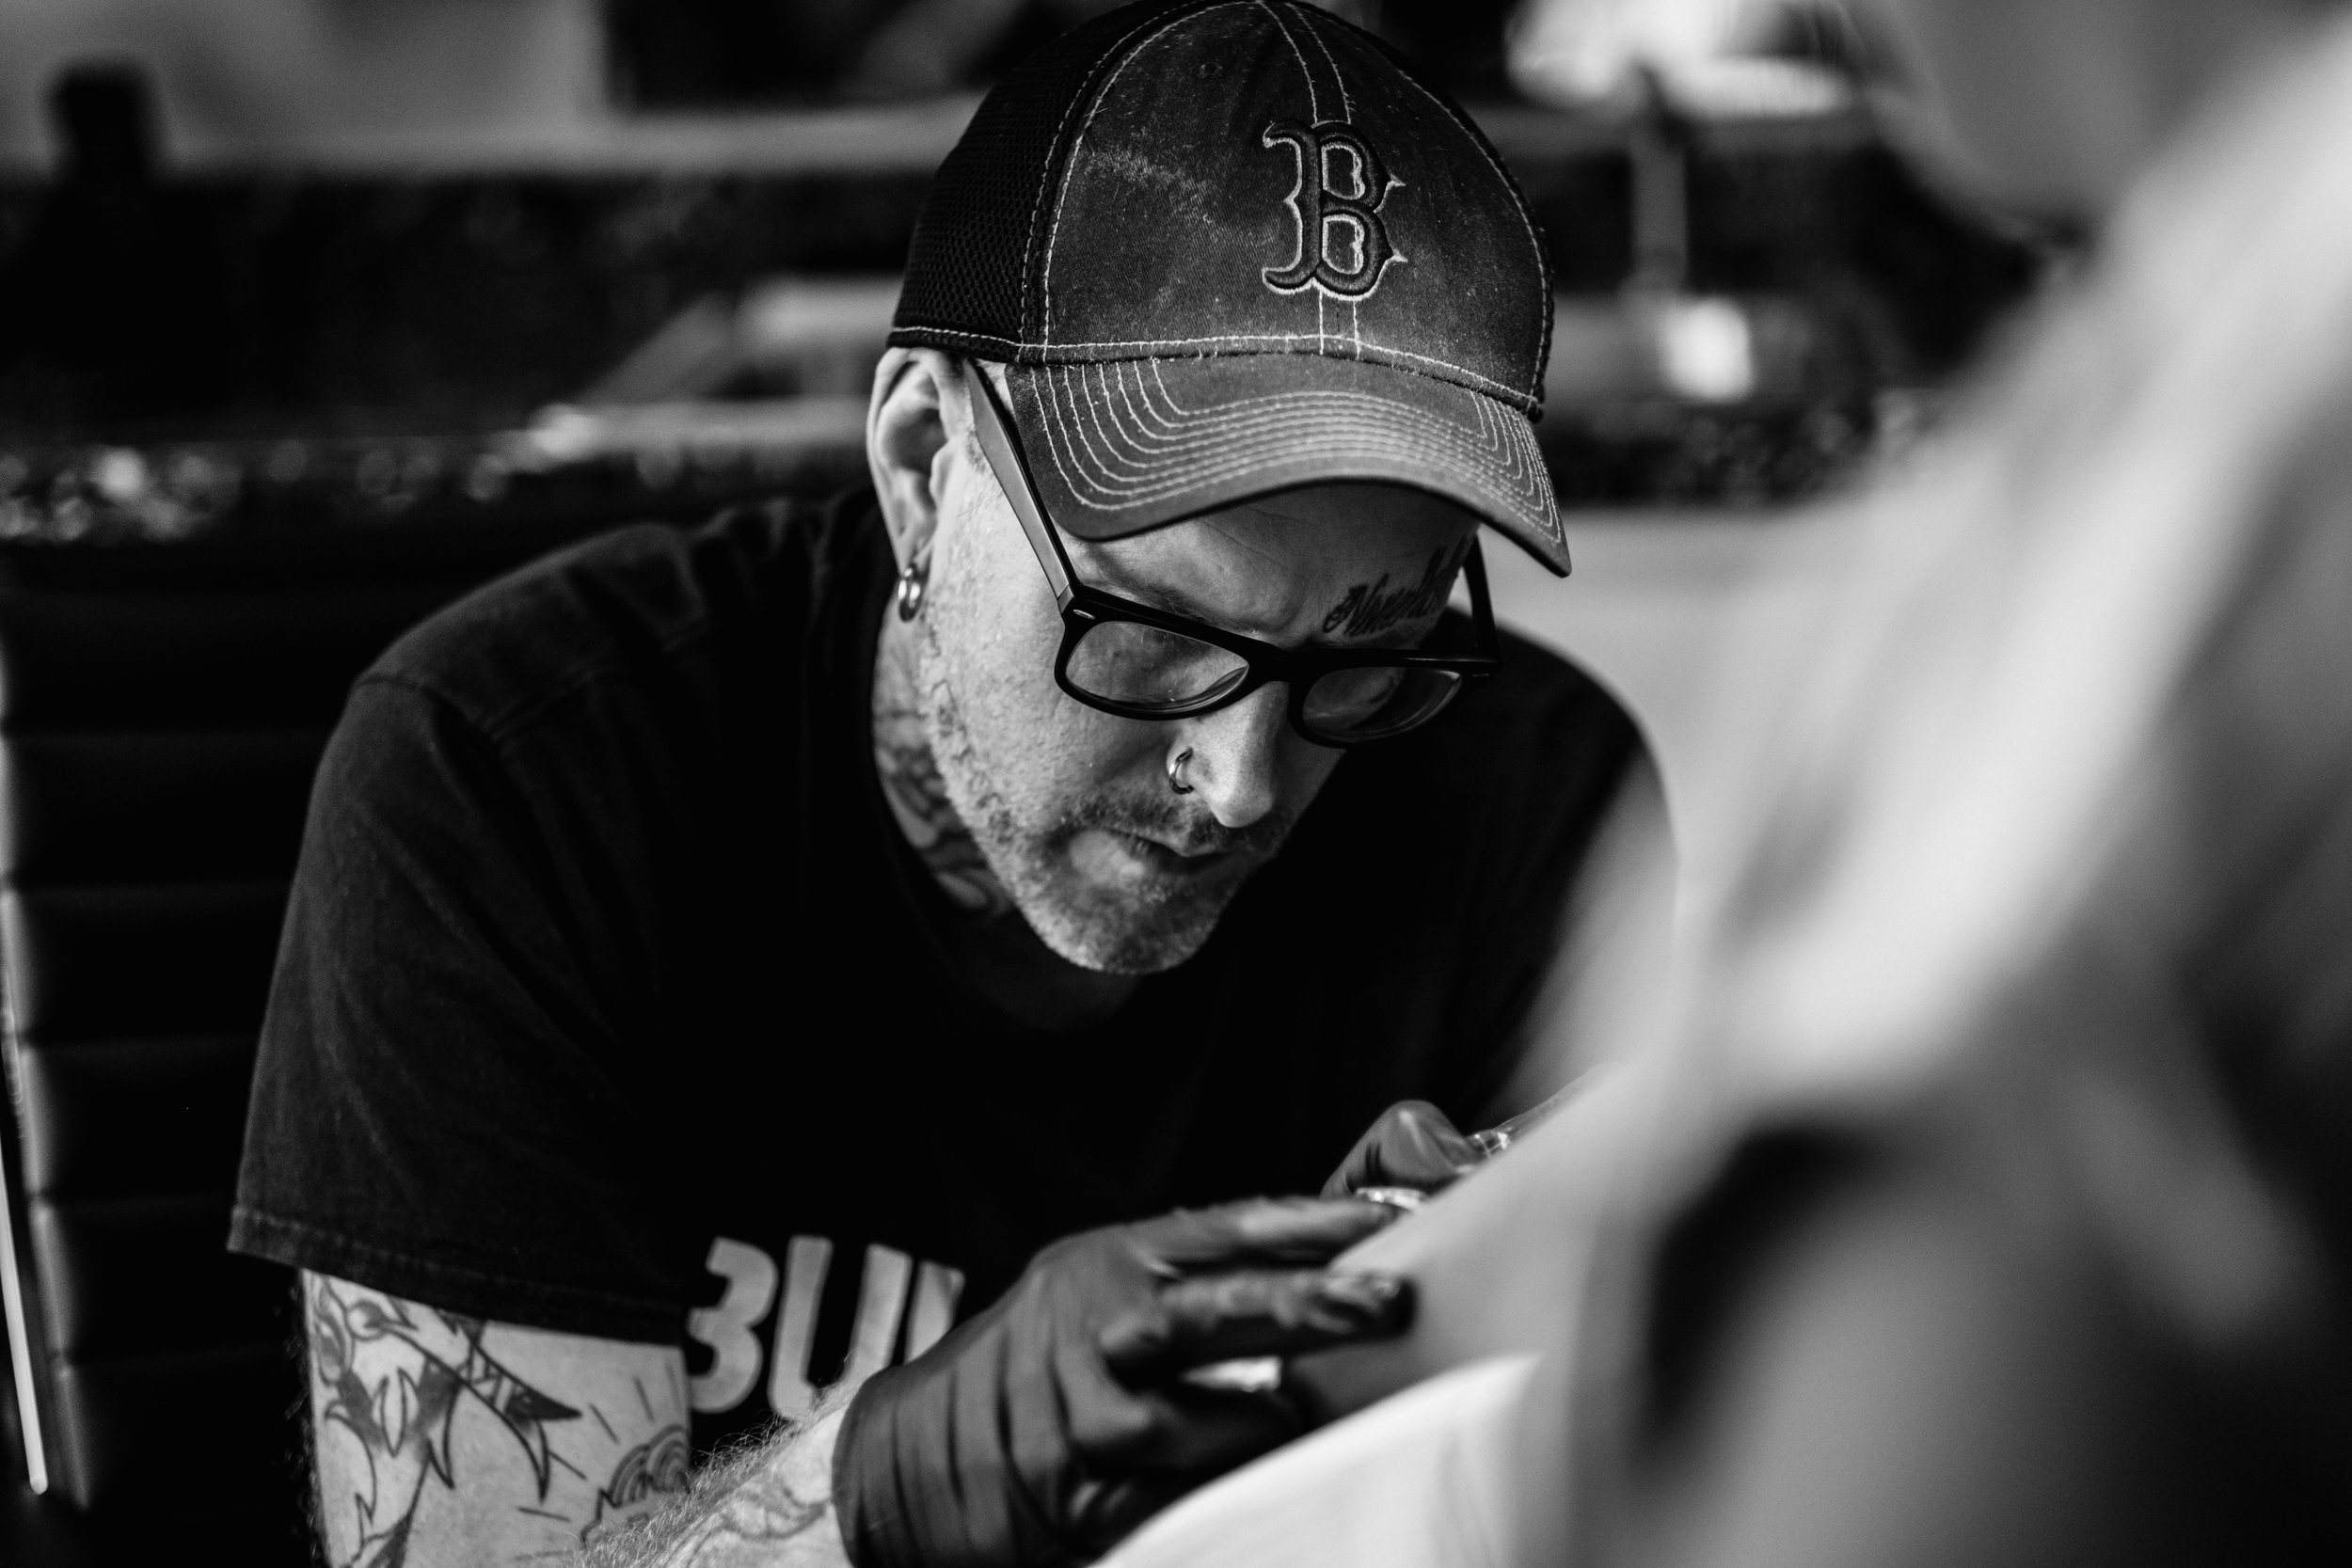 Aaron Marco- 25+ years experience - Owner of Marco's Tattoo and tattooer with over 25 years of experience. He specializes in black and grey realism and cover up work.